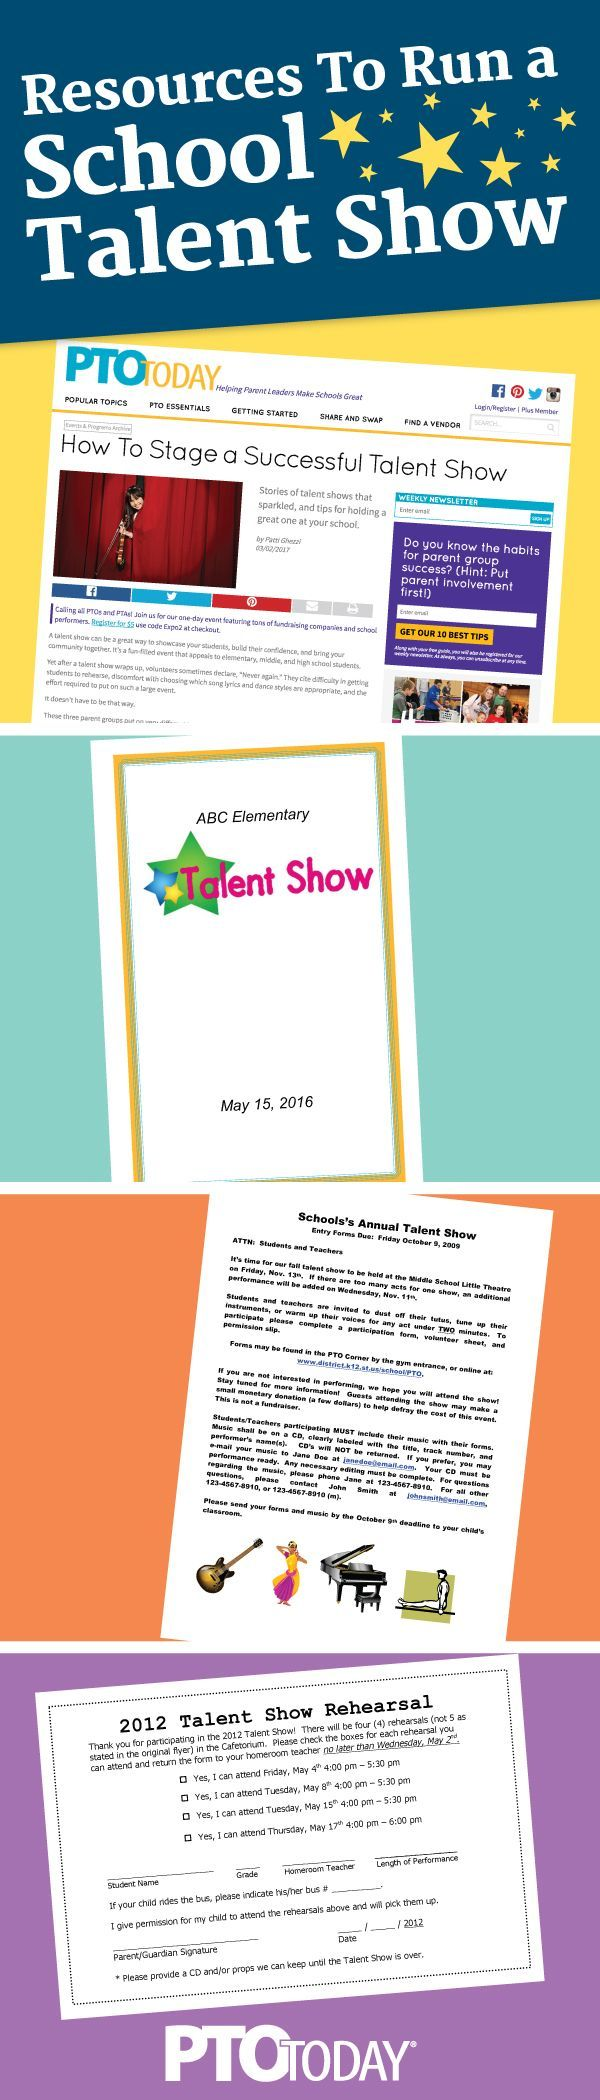 Get our Talent Show resources to help your PTO run a spectacular show!